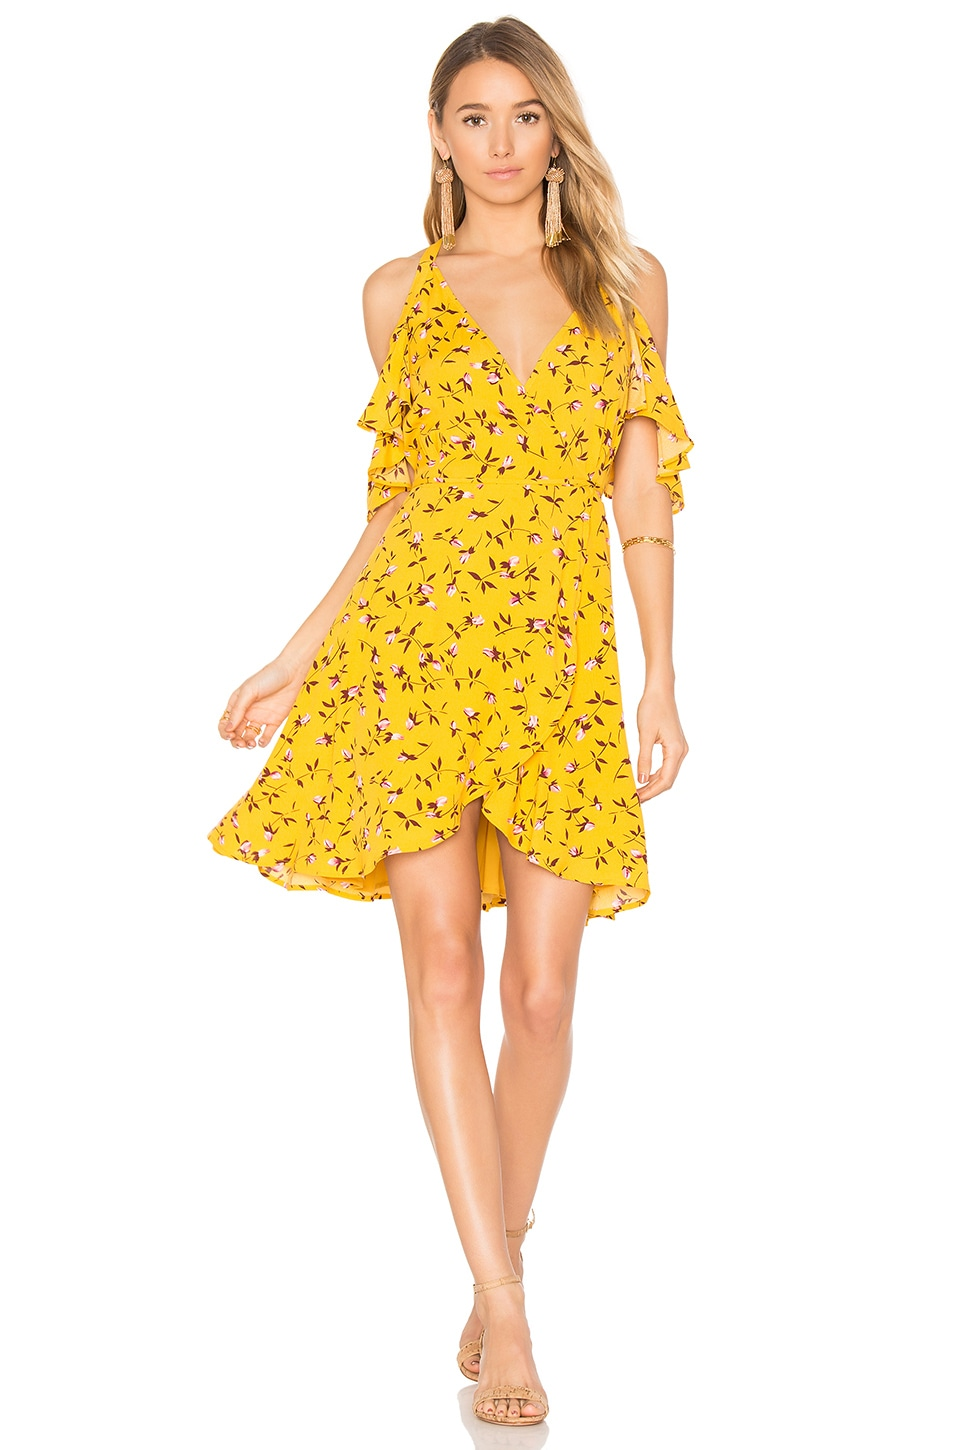 Privacy Please x REVOLVE Delta Dress in Mustard